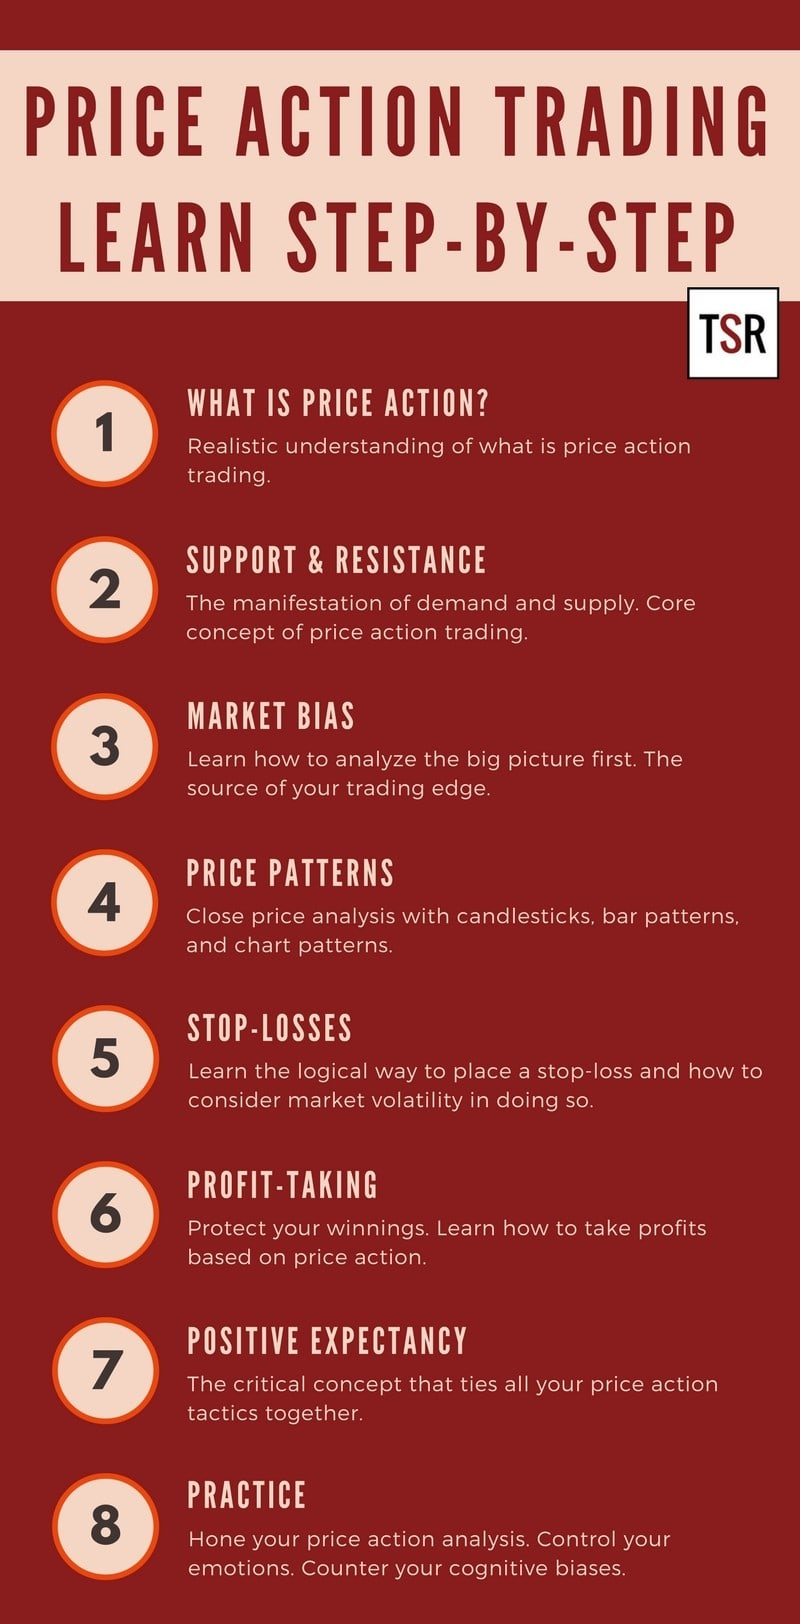 Learning Price Action Trading Step By Step